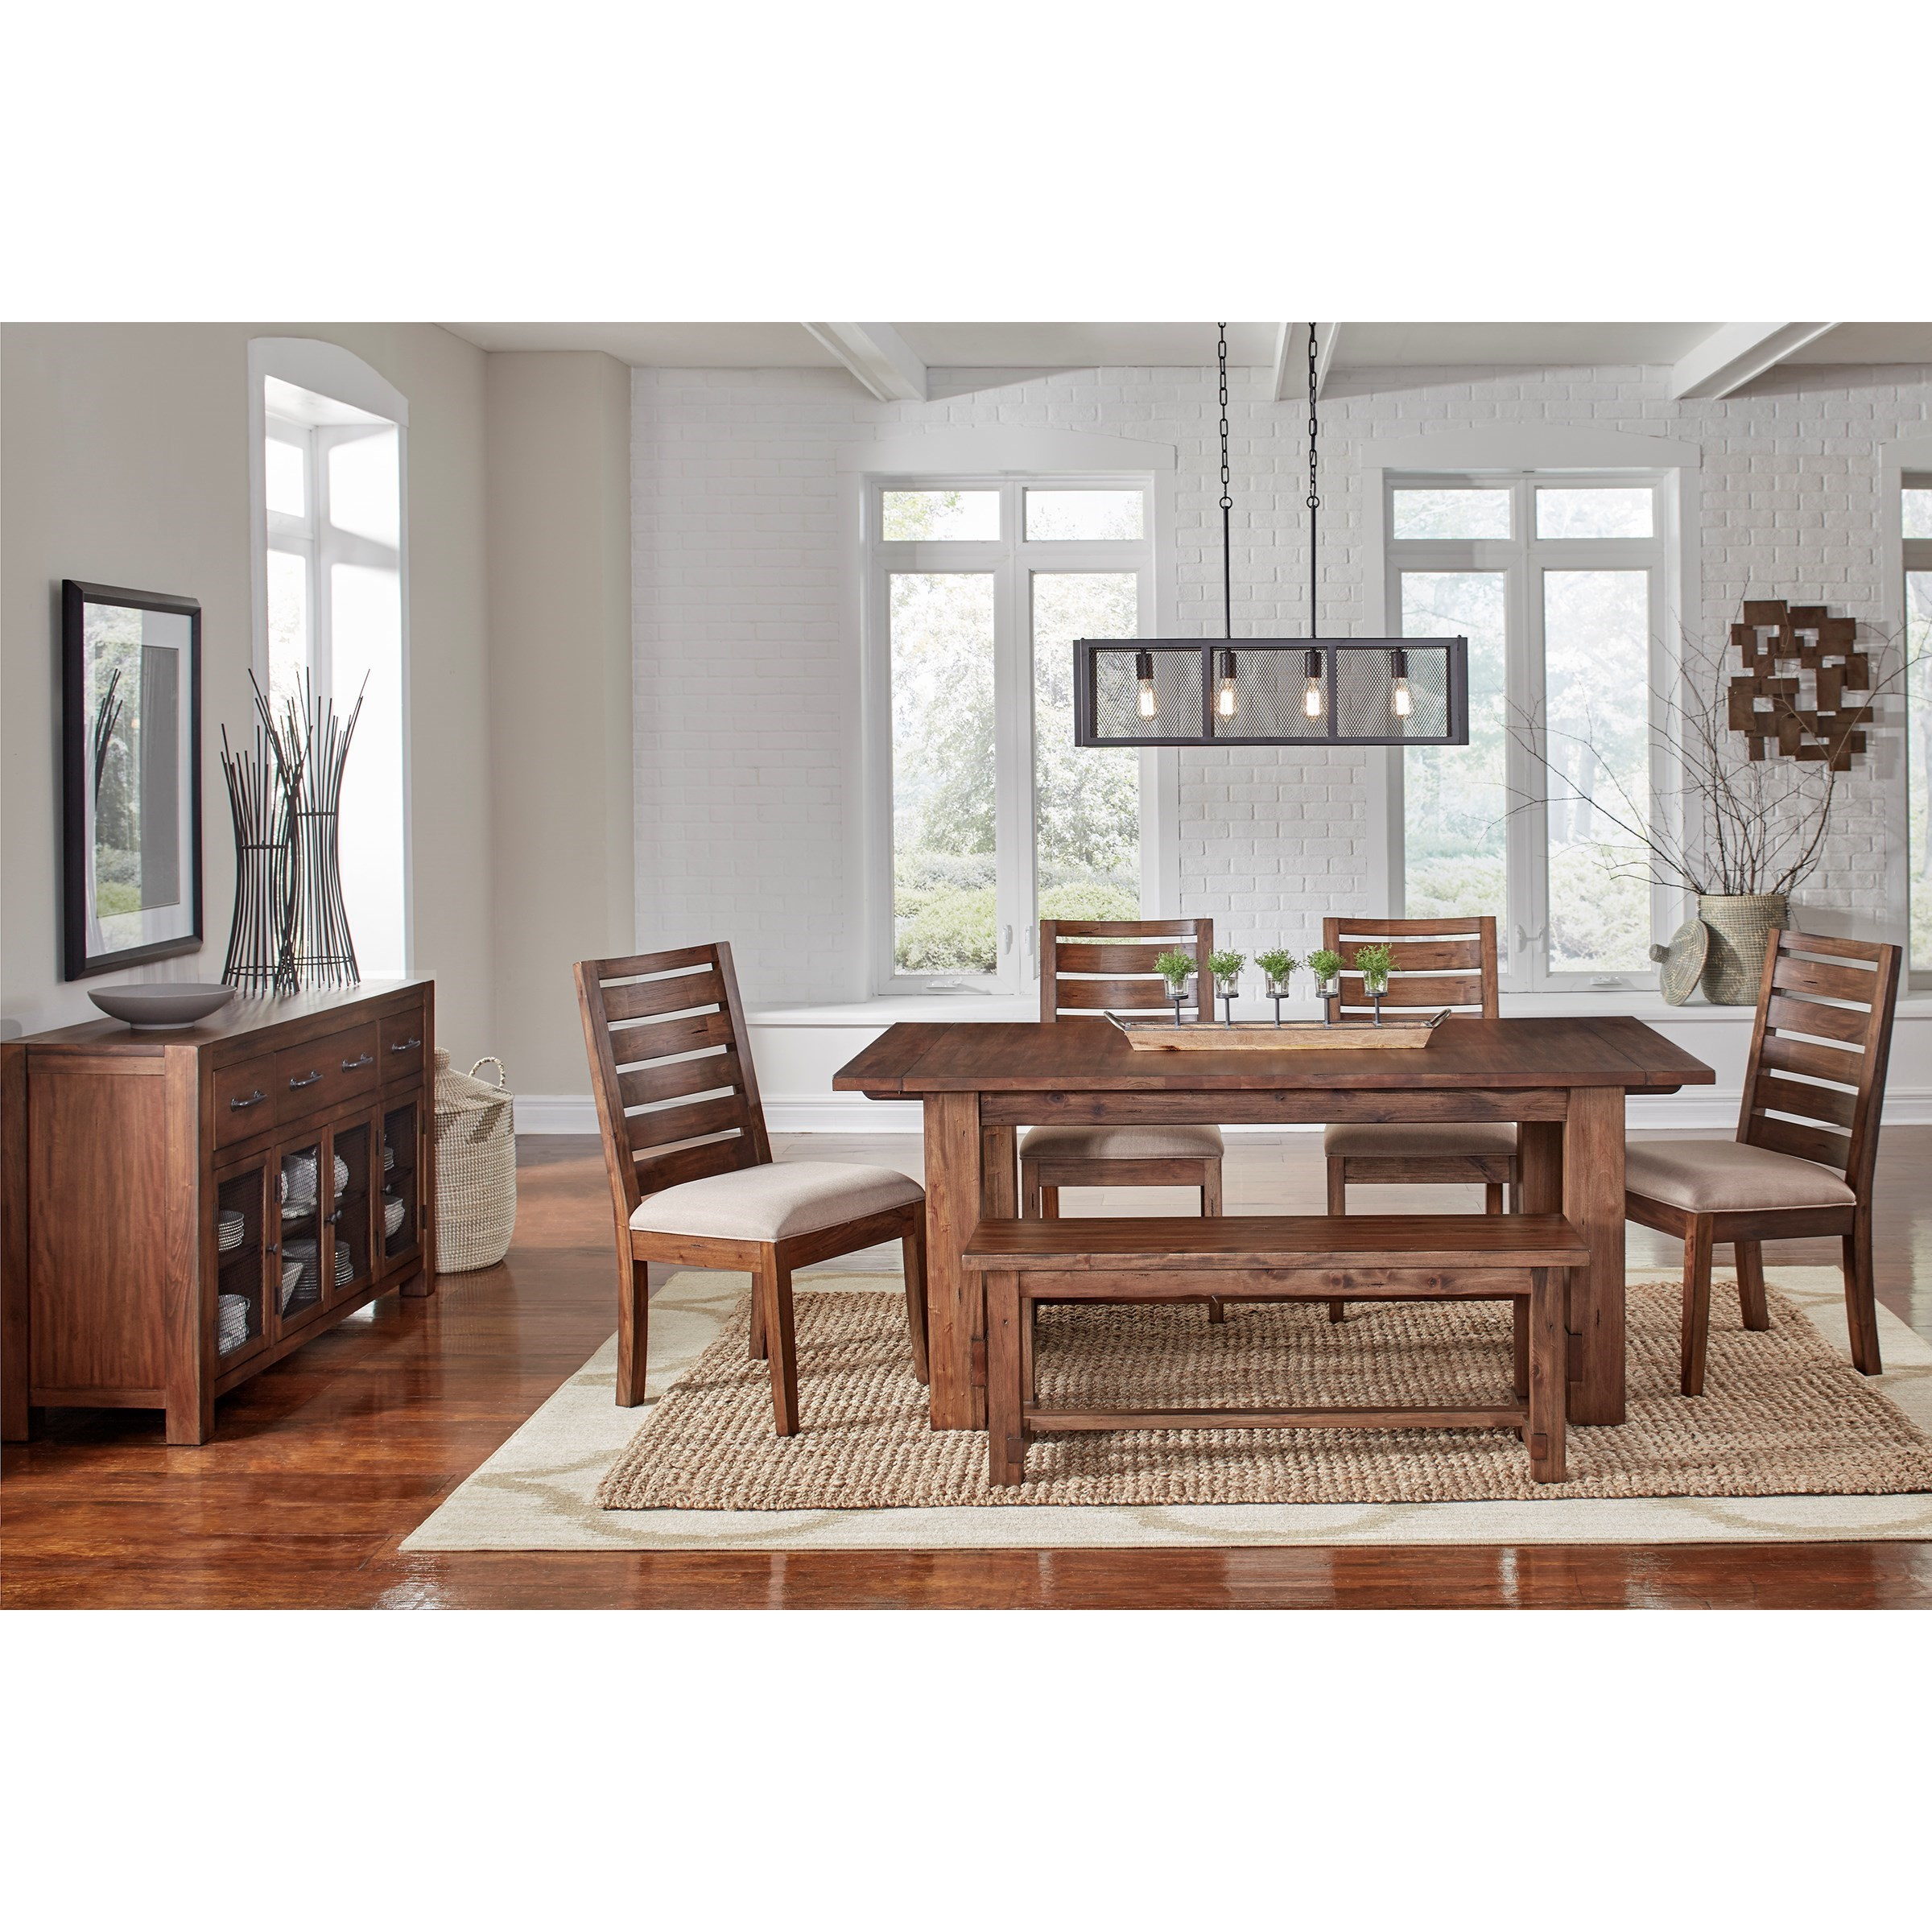 Anacortes Dining Room Group by AAmerica at SuperStore